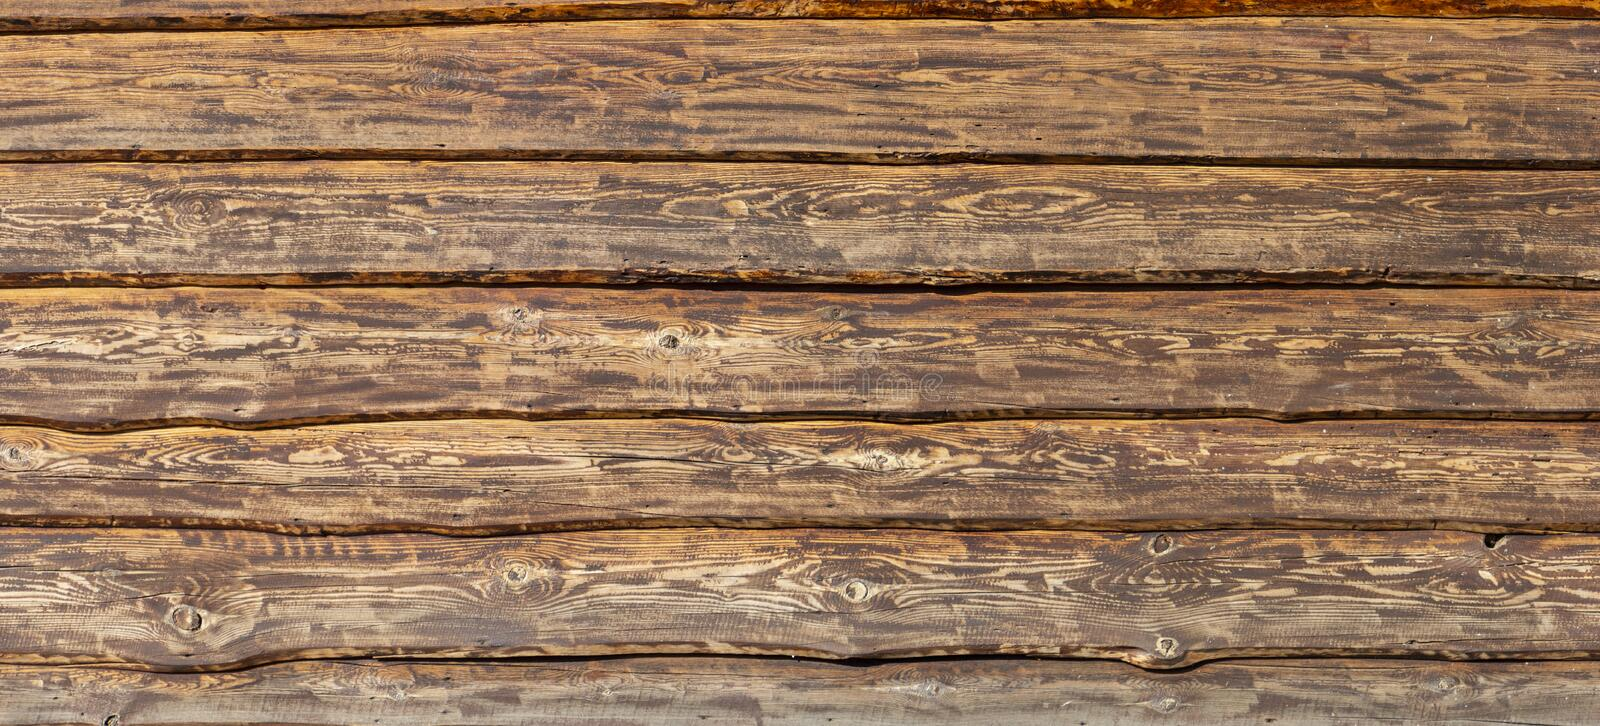 wood brown grain texture, top view of wooden table wood wall background royalty free stock photos